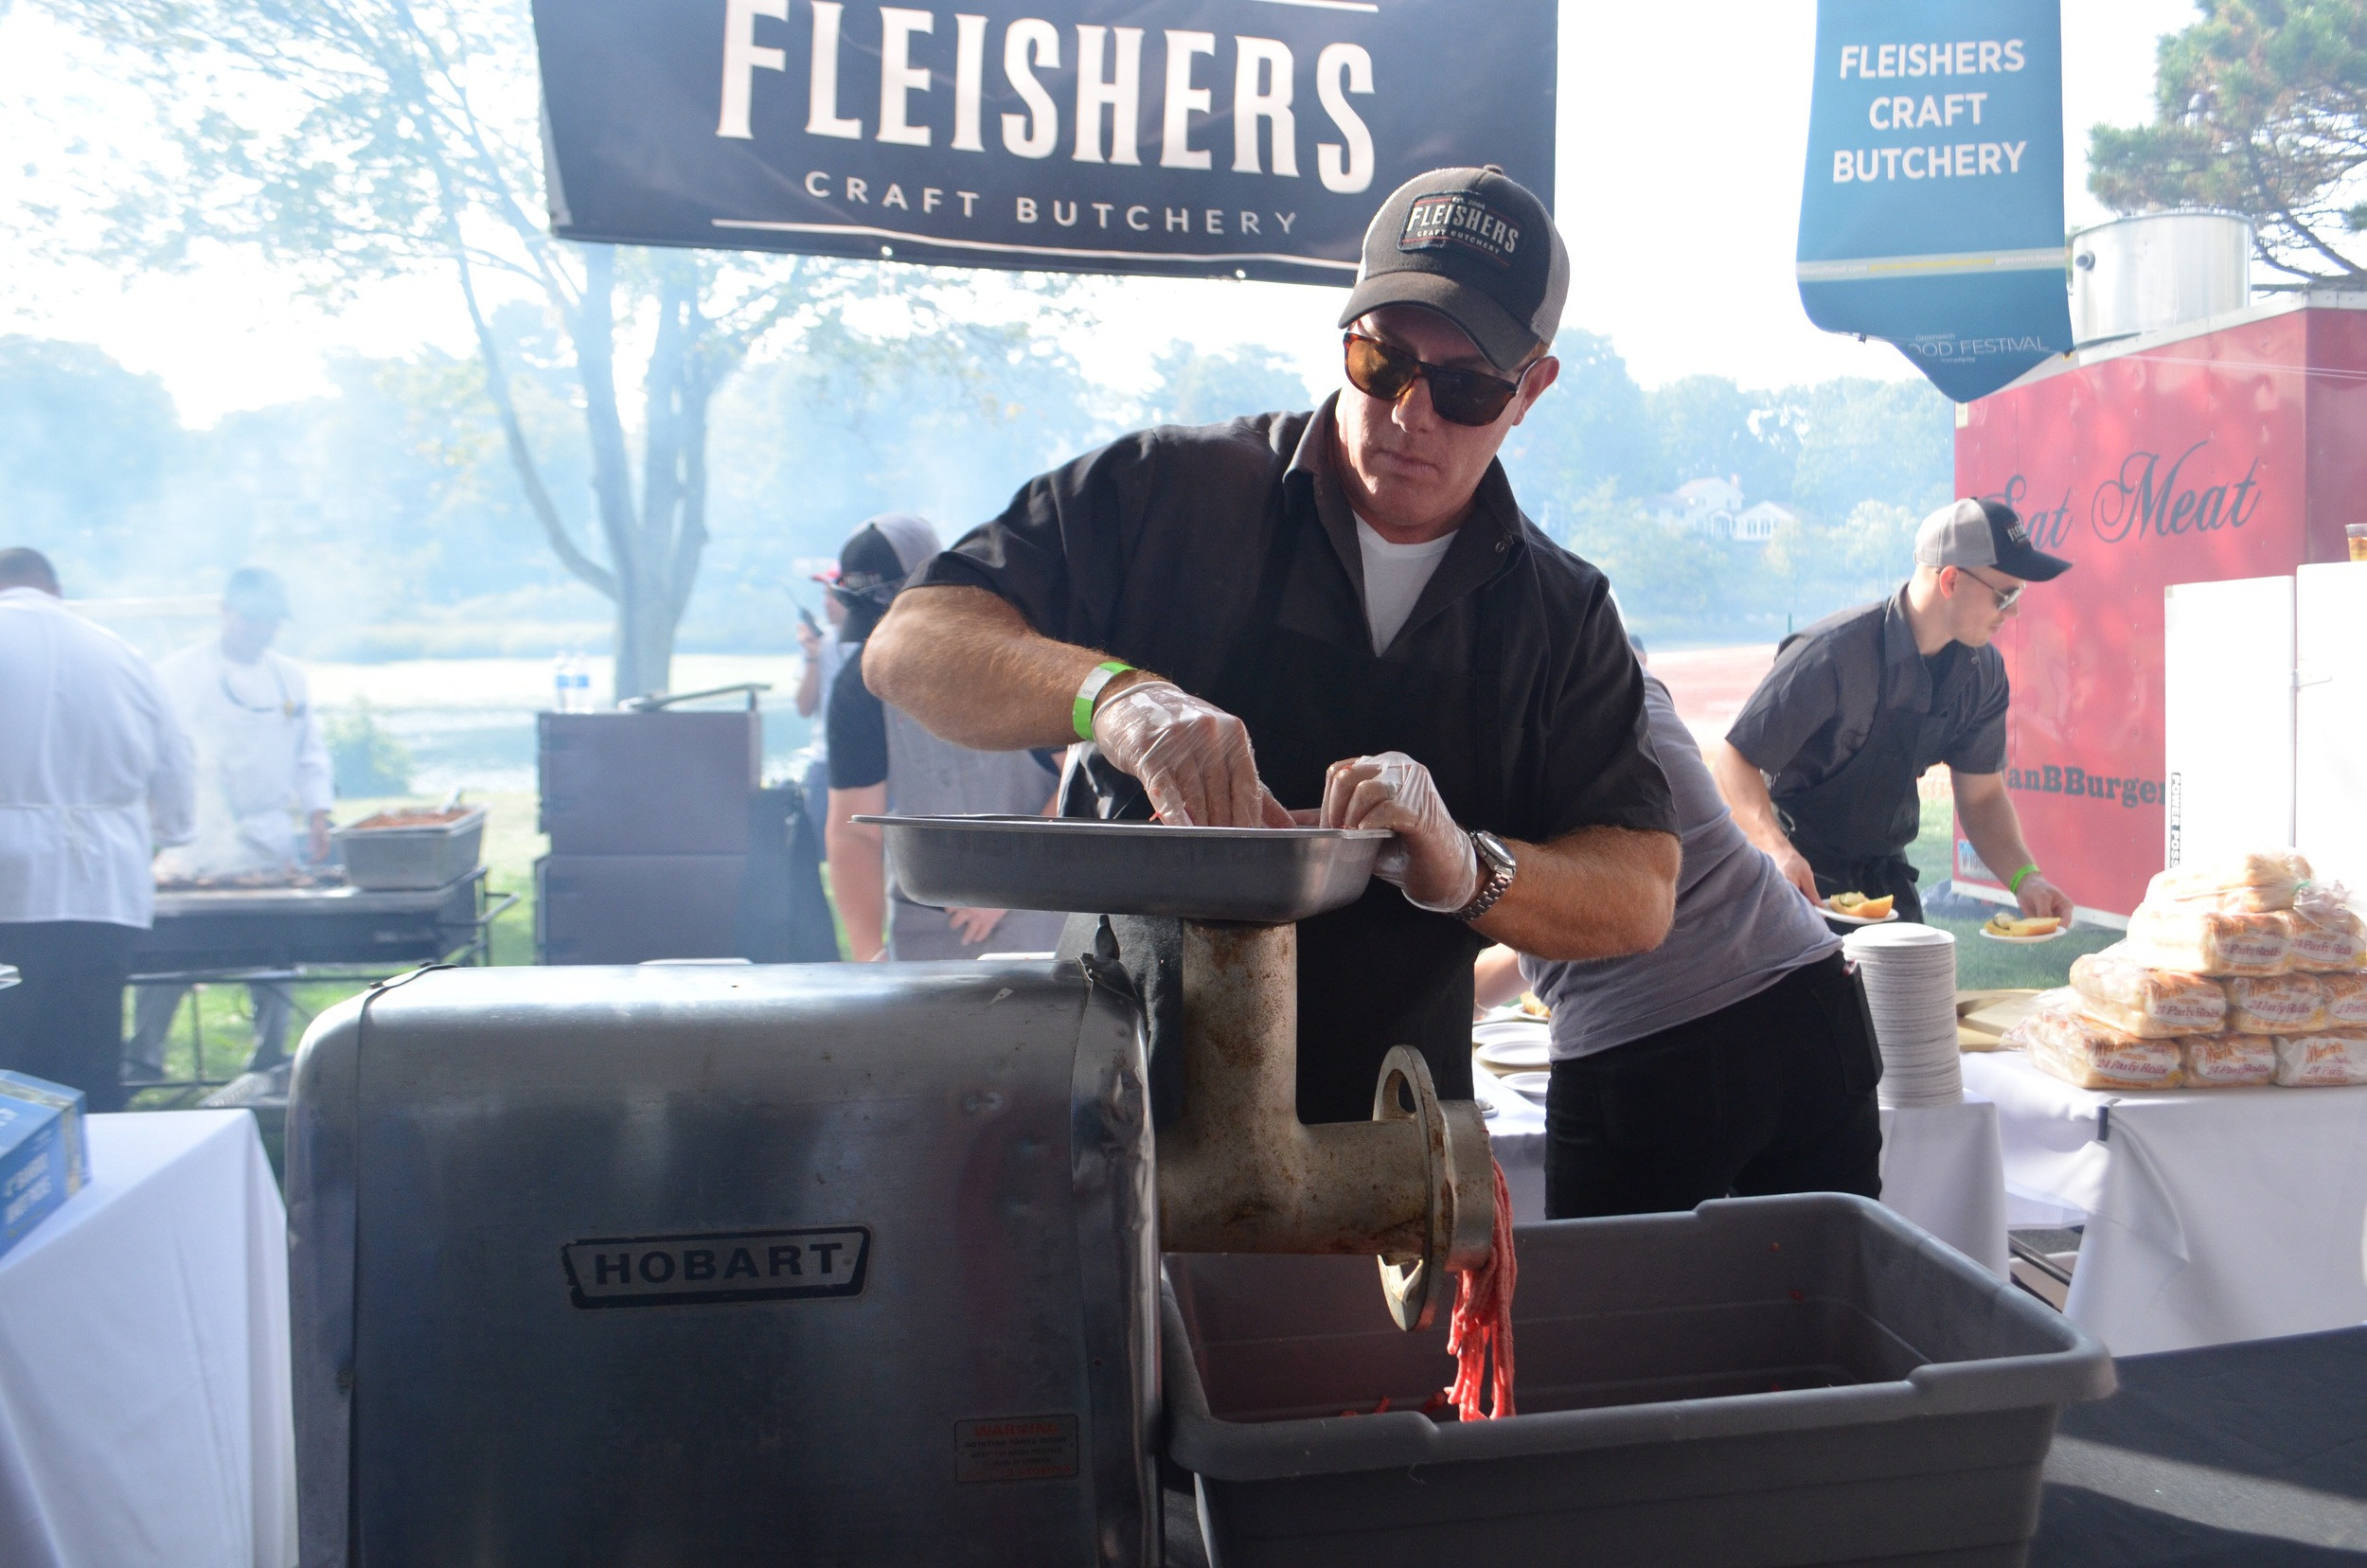 Bravo to  Fleisher's Craft Butchery  for grinding their own meat in the Budweiser and Burgers tent